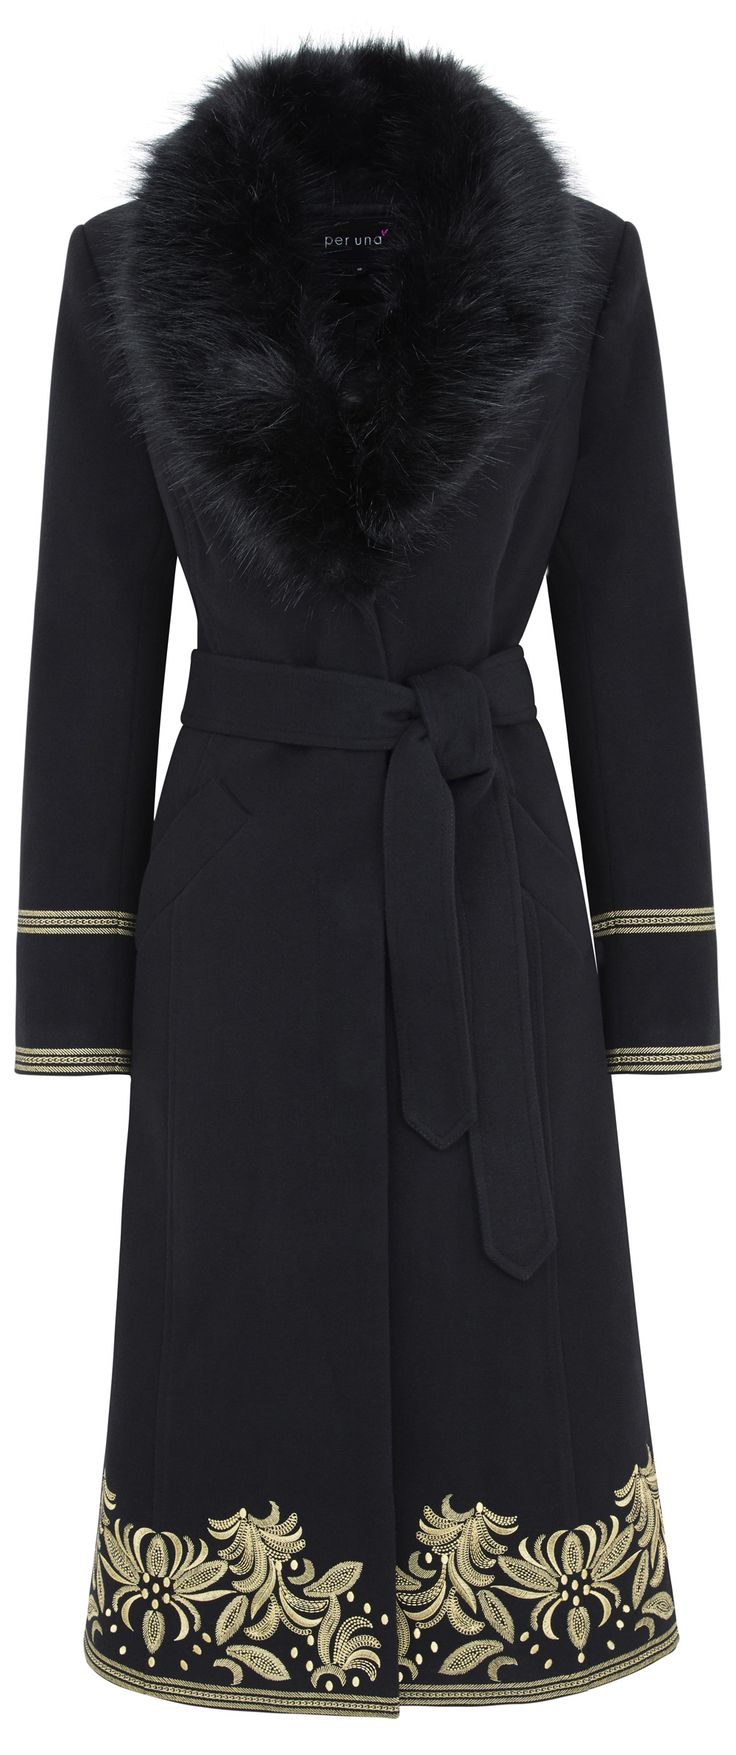 cool coat trends for 2014 - http://boomerinas.com/2013/11/06/trendy-coats-for-fall-winter-mature-woman-seeking-cute-comfortable-jacket-for-long-term-relationship/